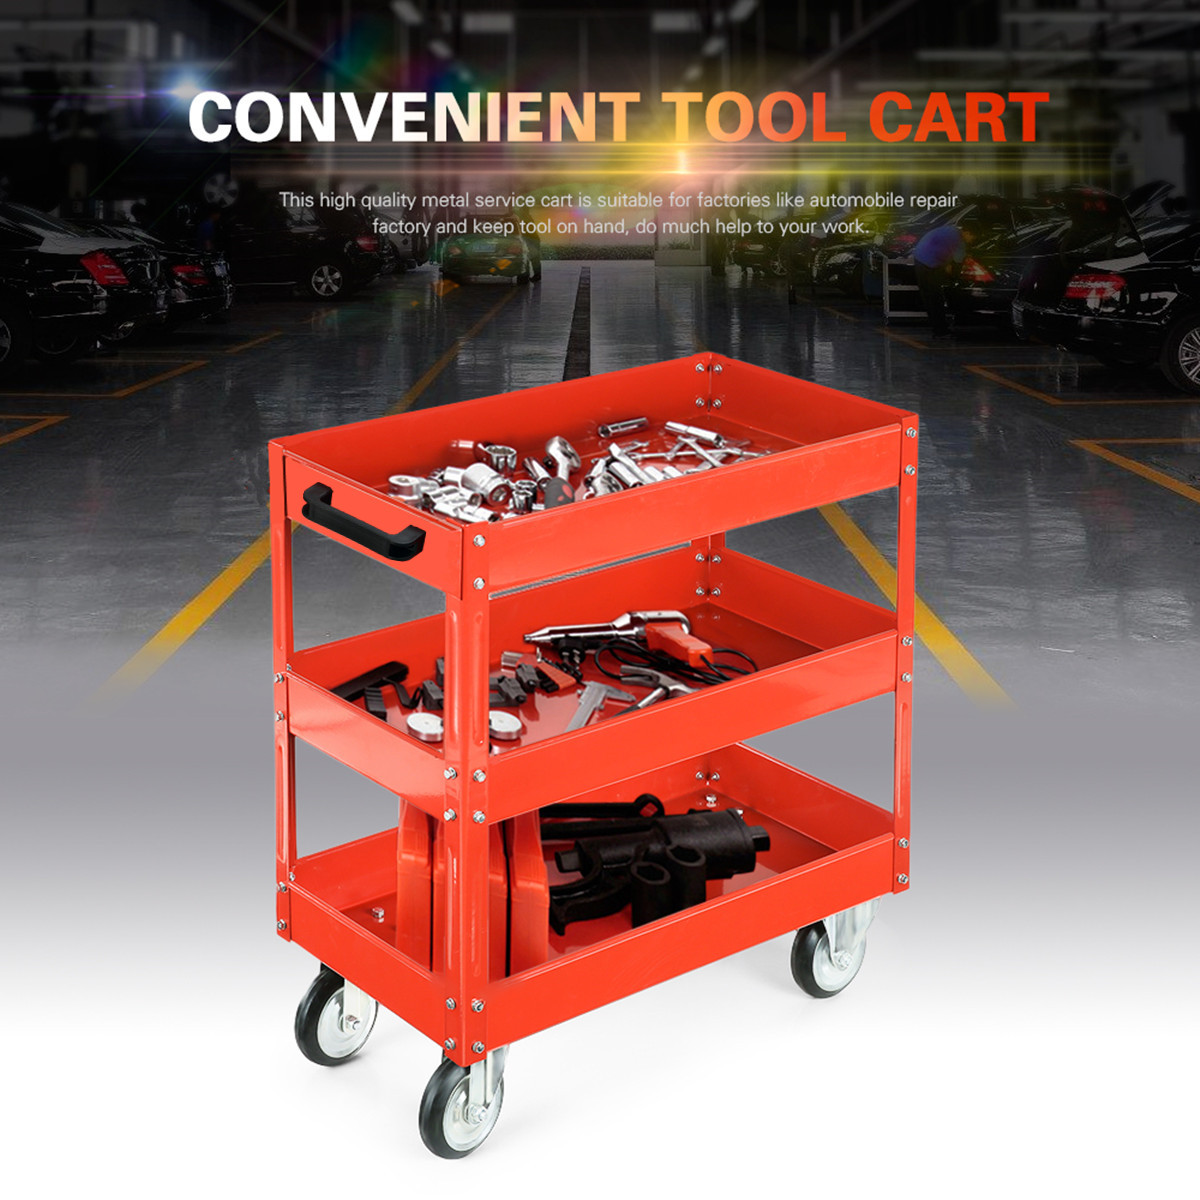 3 Tier Shelf Heavy   Workshop Garage DIY Tool Storage Trolley Wheel Cart Tray Capacity for Holding Heavy Equipment 200kg Load